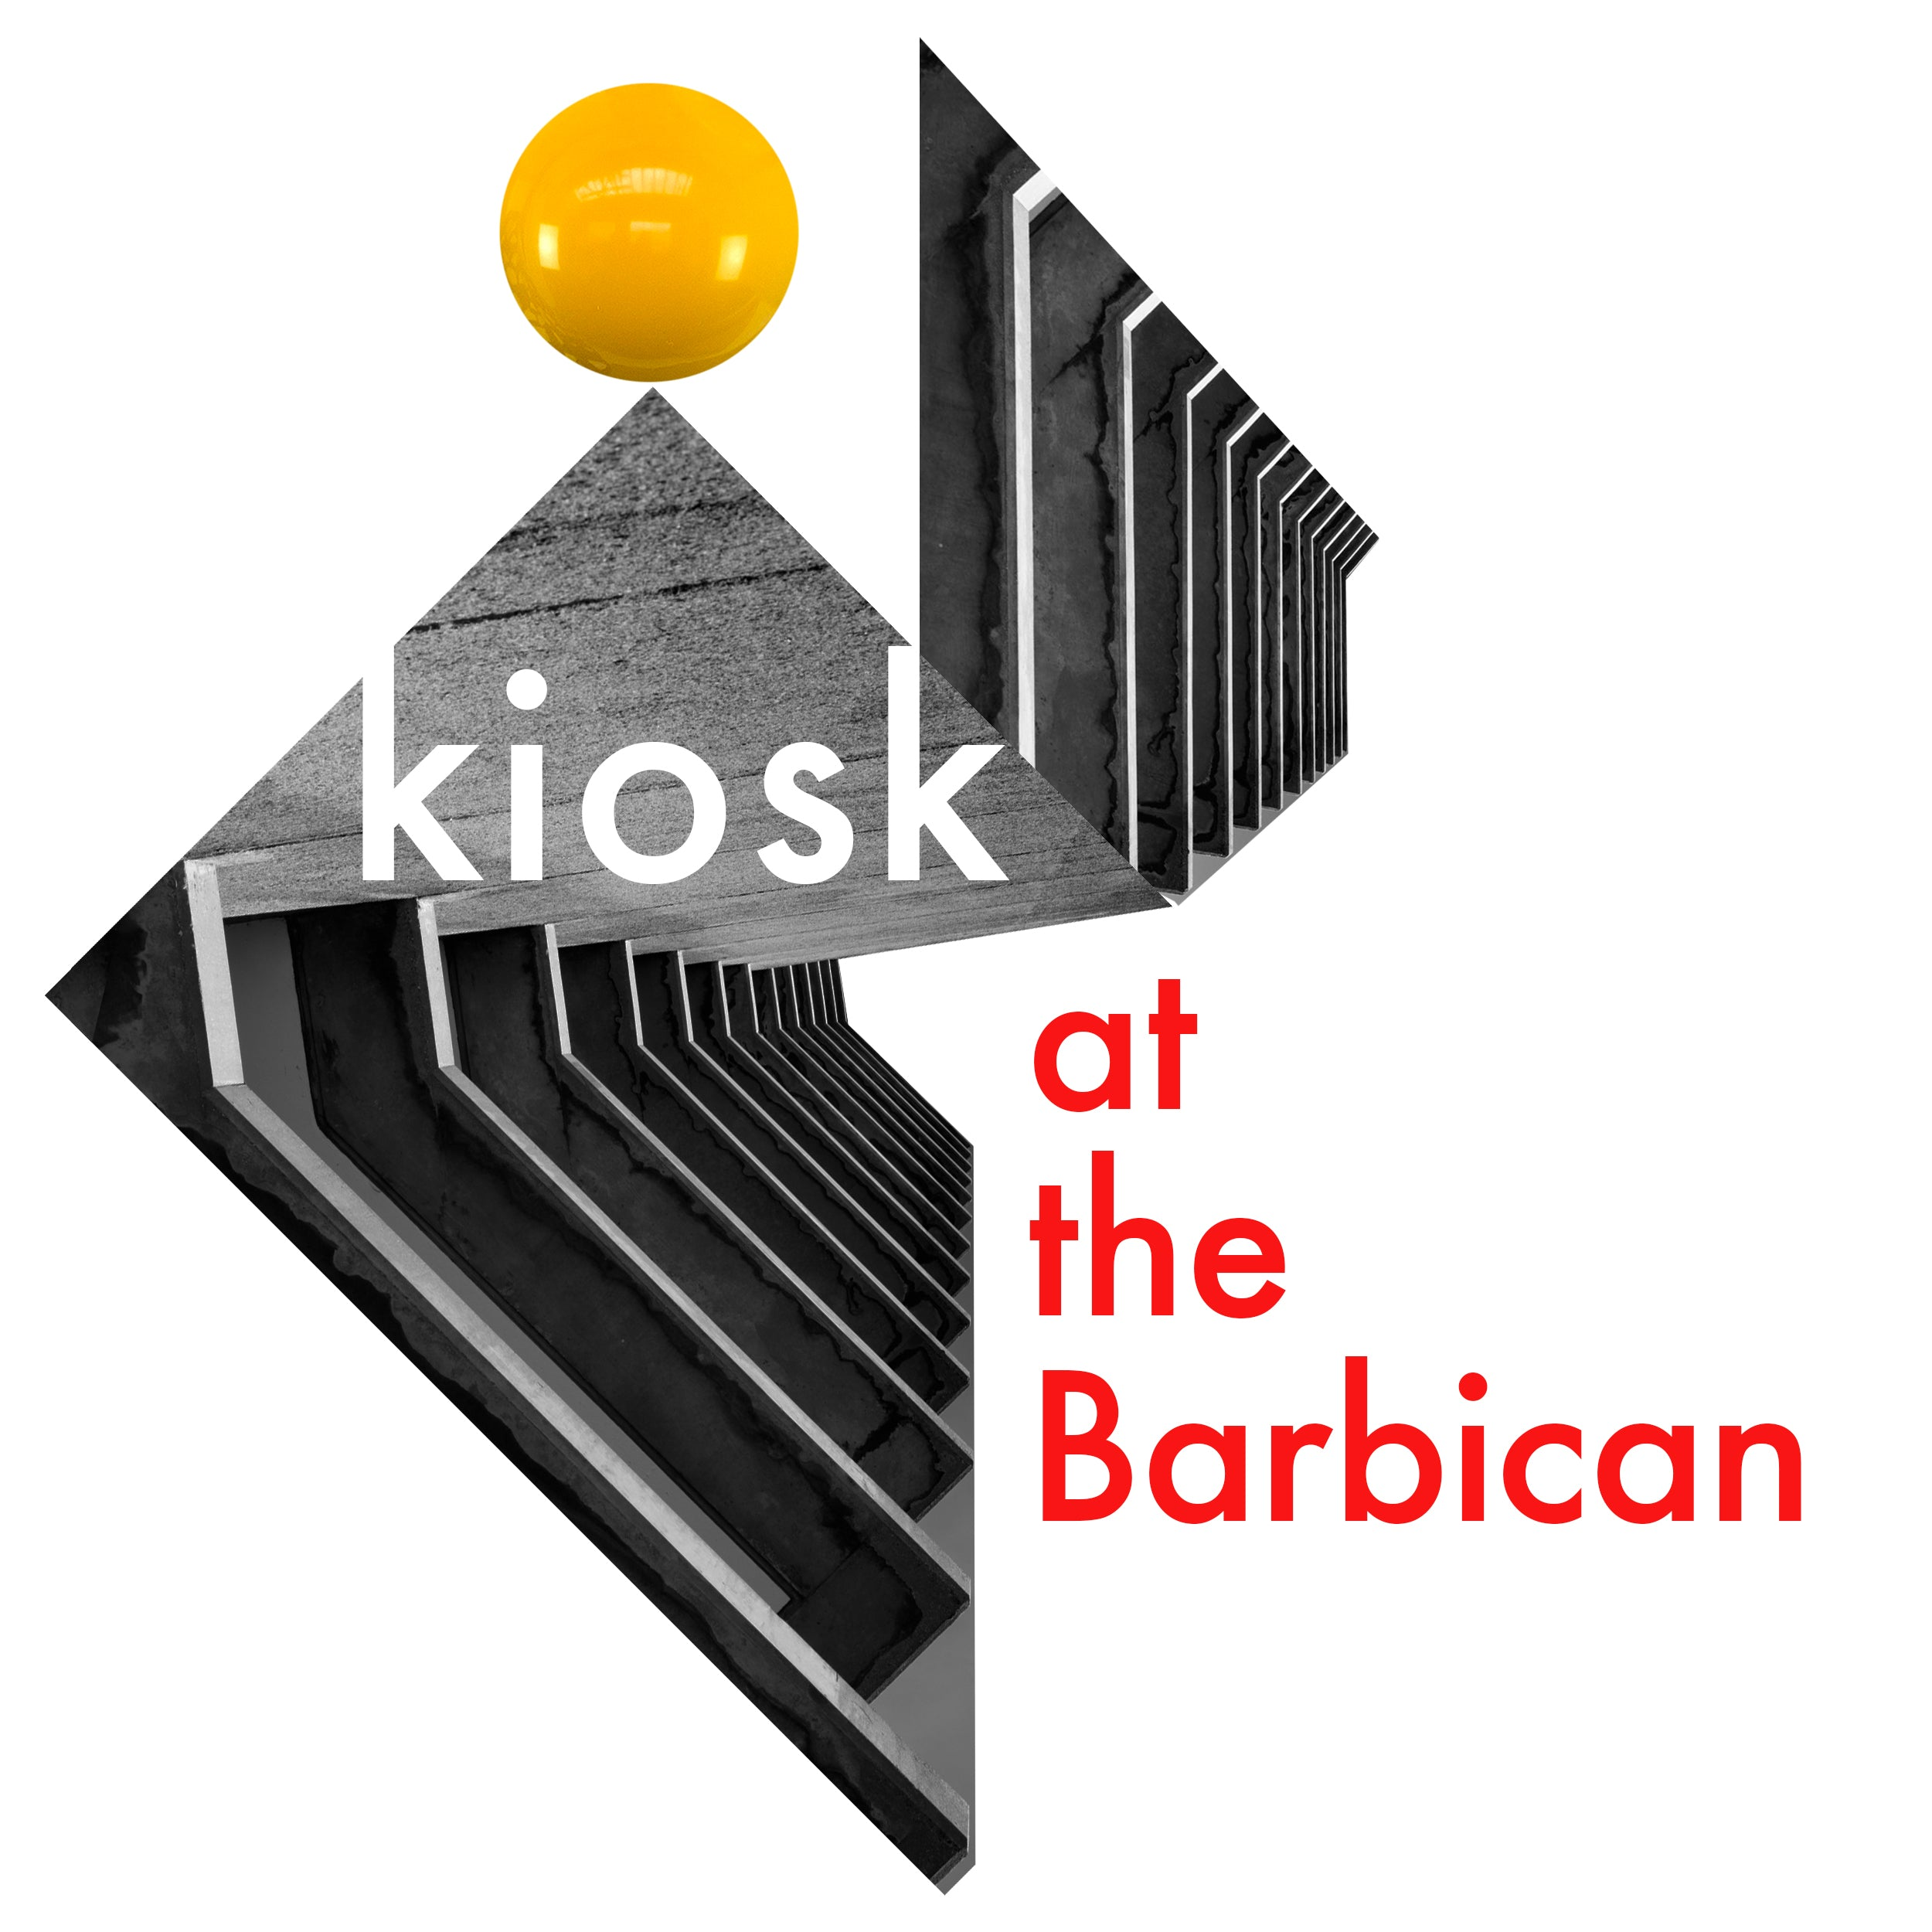 KIOSK visits the Barbican